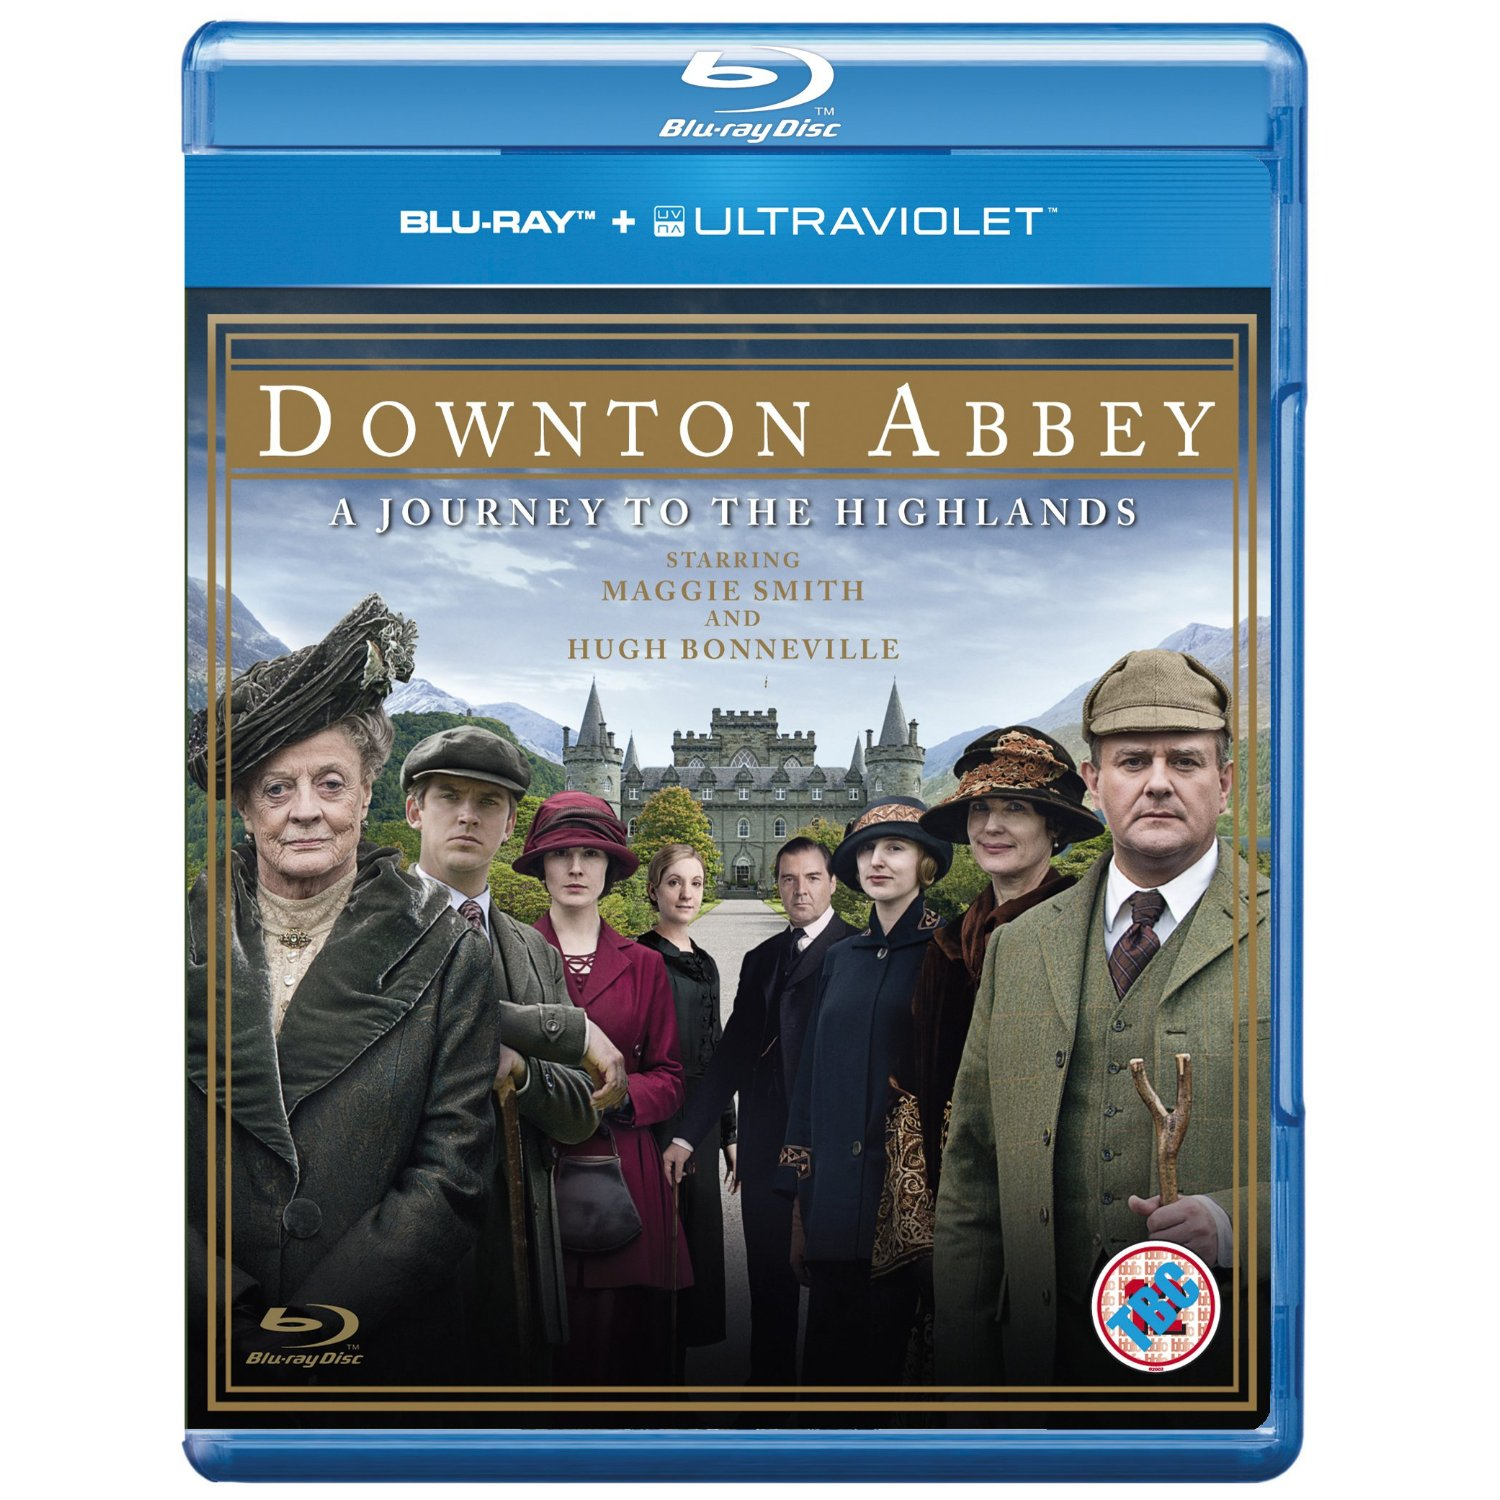 Downton Abbey  Special For Christmas 2012 - Downton Abbey - Film - PLAYBACK - 5050582916263 - 26/12-2012